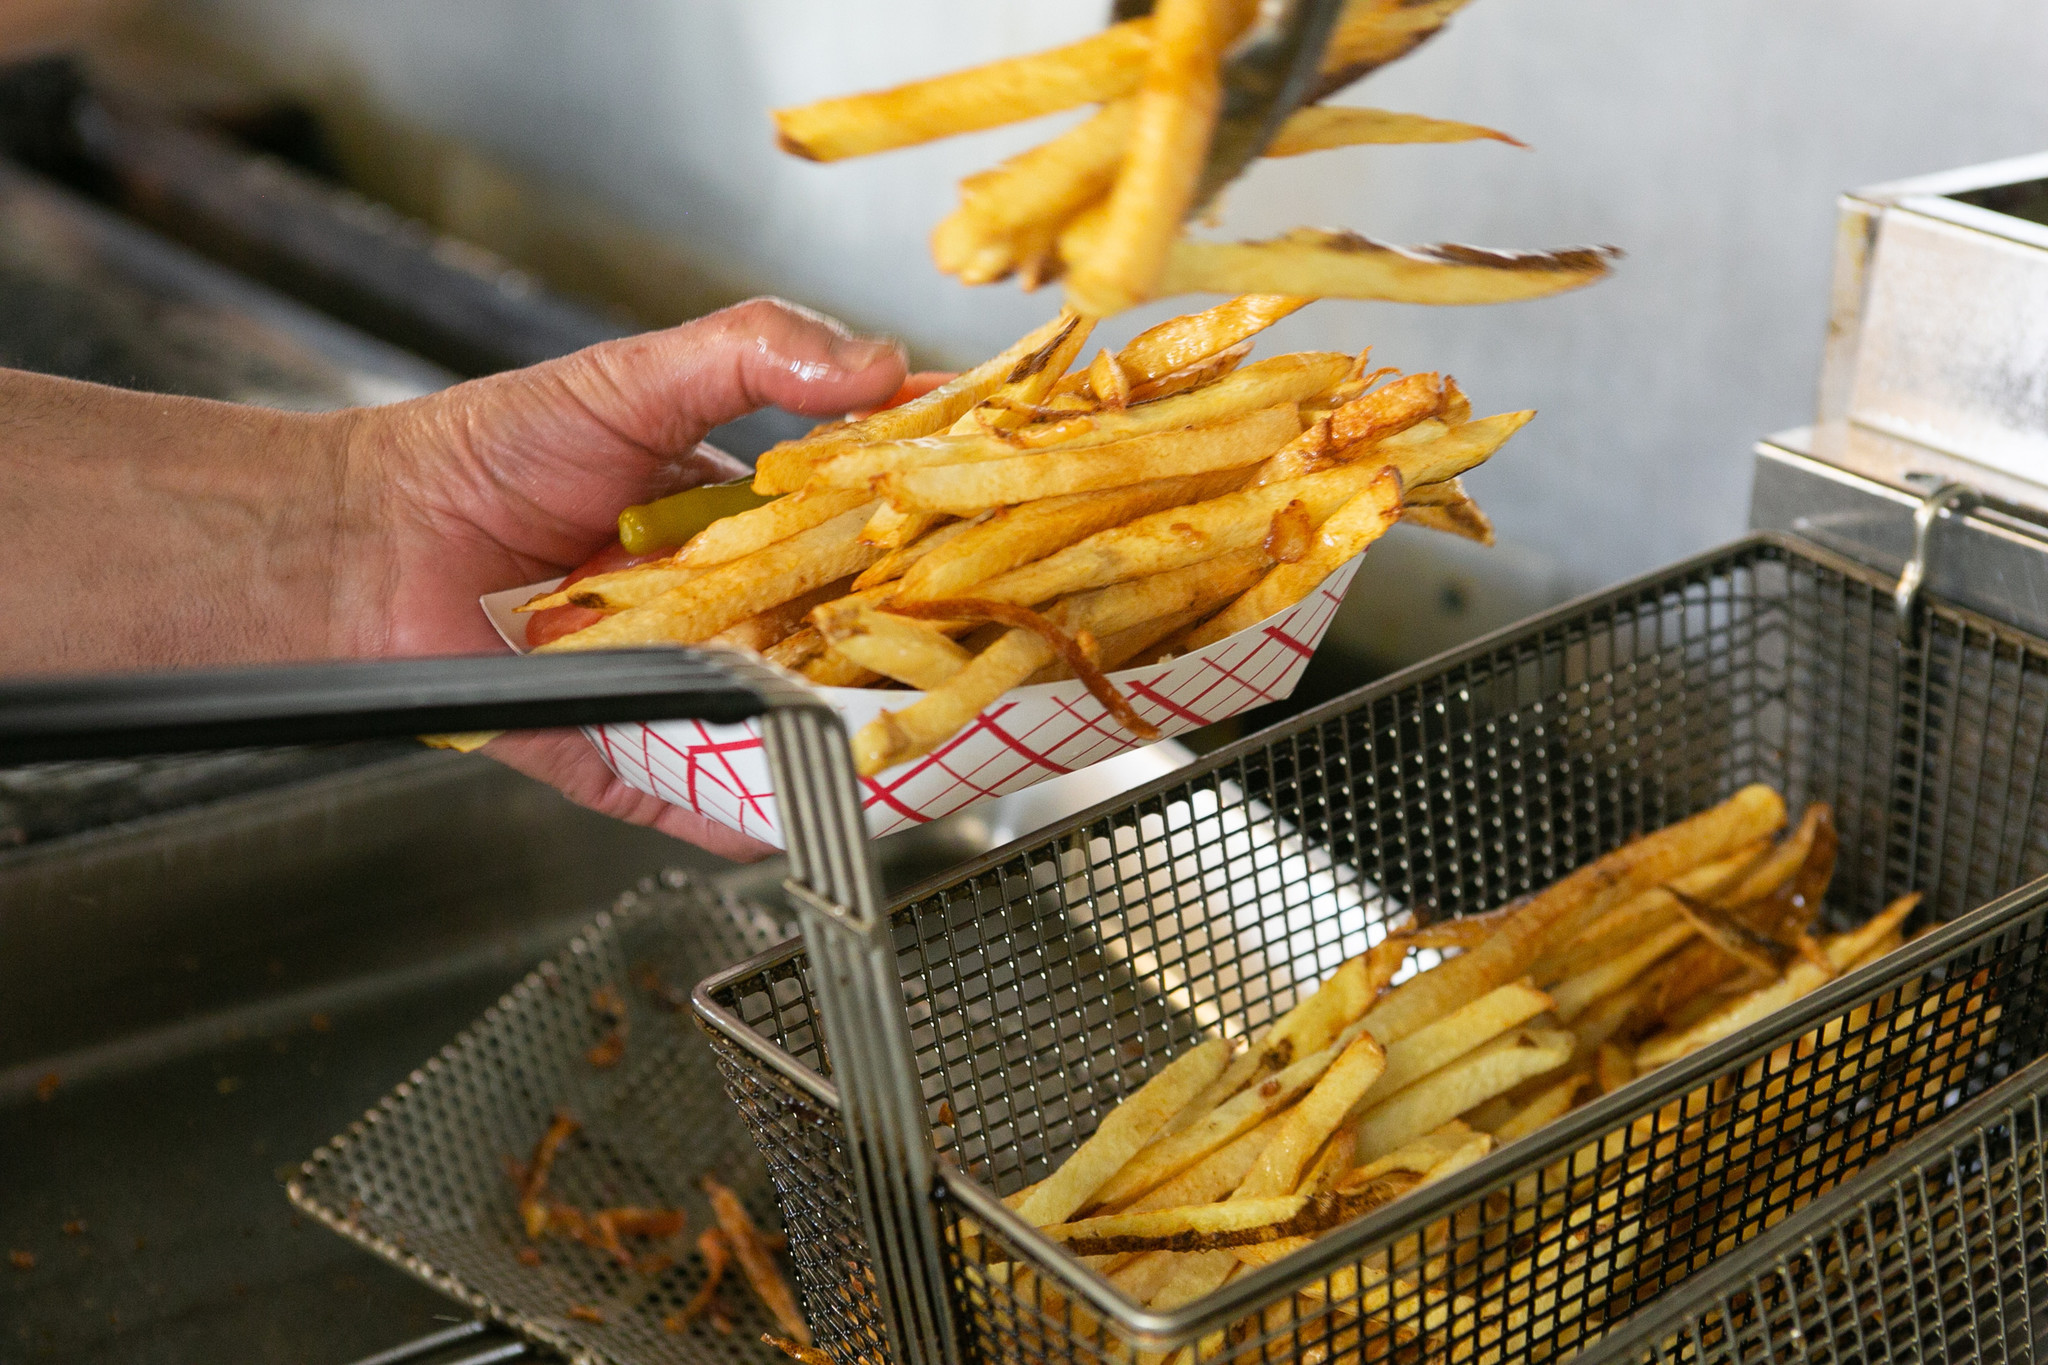 Chicago's best french fries under $5 — our 20 top picks after trying 106 restaurants